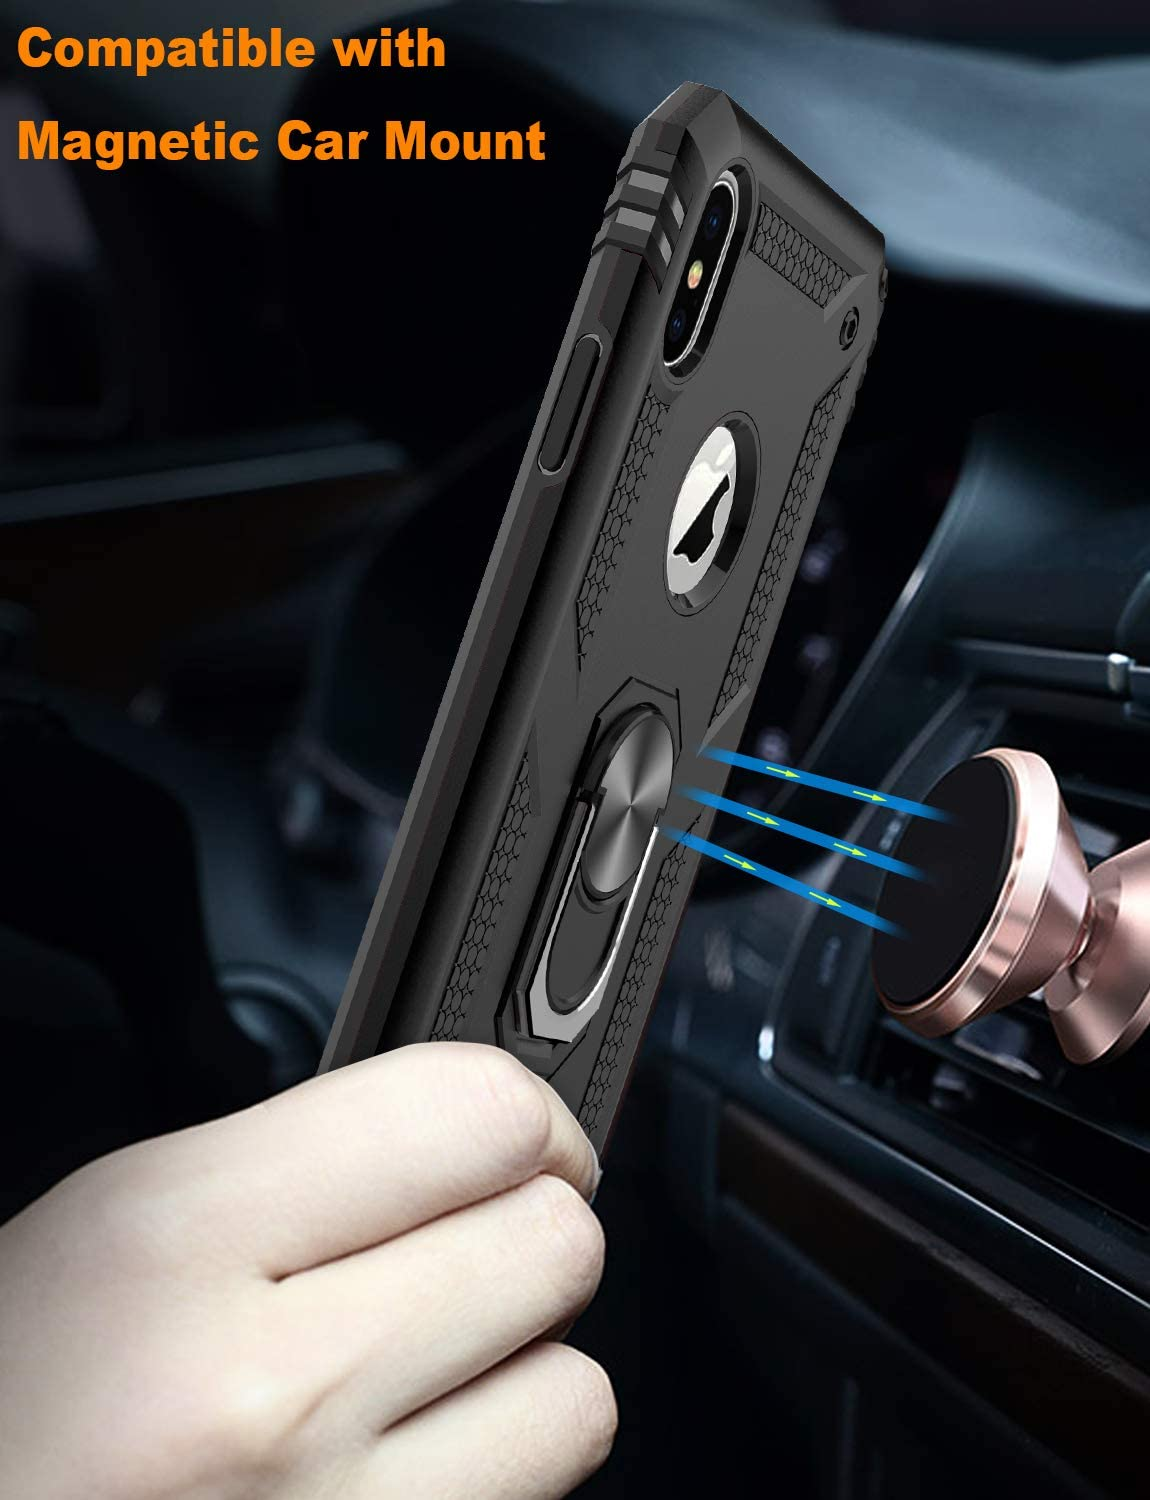 LUMARKE iPhone Xs Max Case with Glass Sreen Protector,Pass 16ft Drop Test Military Grade Cover with Magnetic Kickstand Car Mount Holder,Protective Phone Case for iPhone Xs Max Black